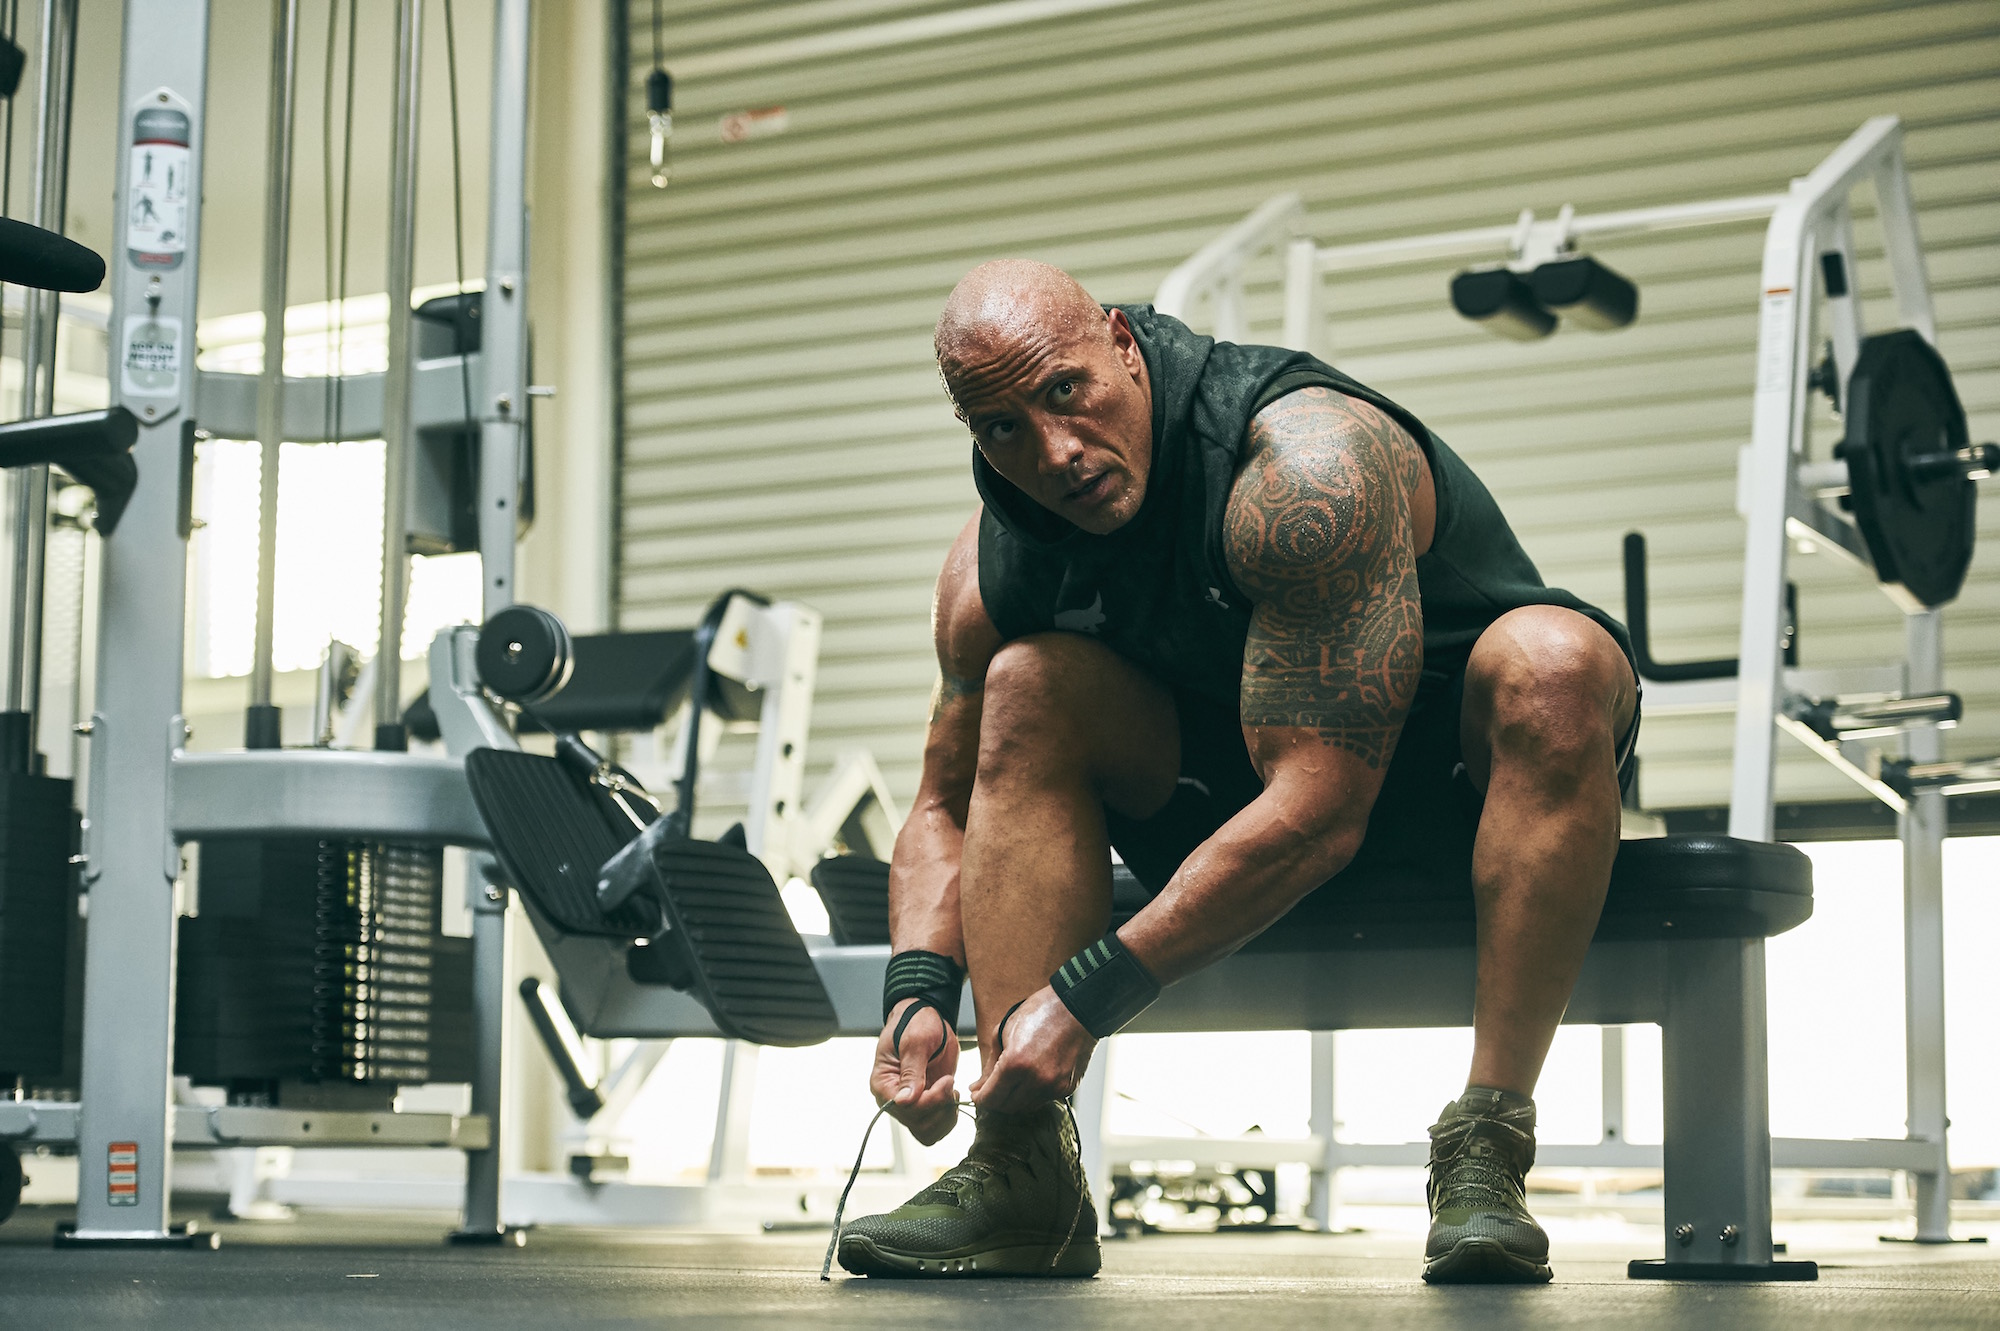 dwayne johnson project rock USDNA collection Under armour rock delta 5